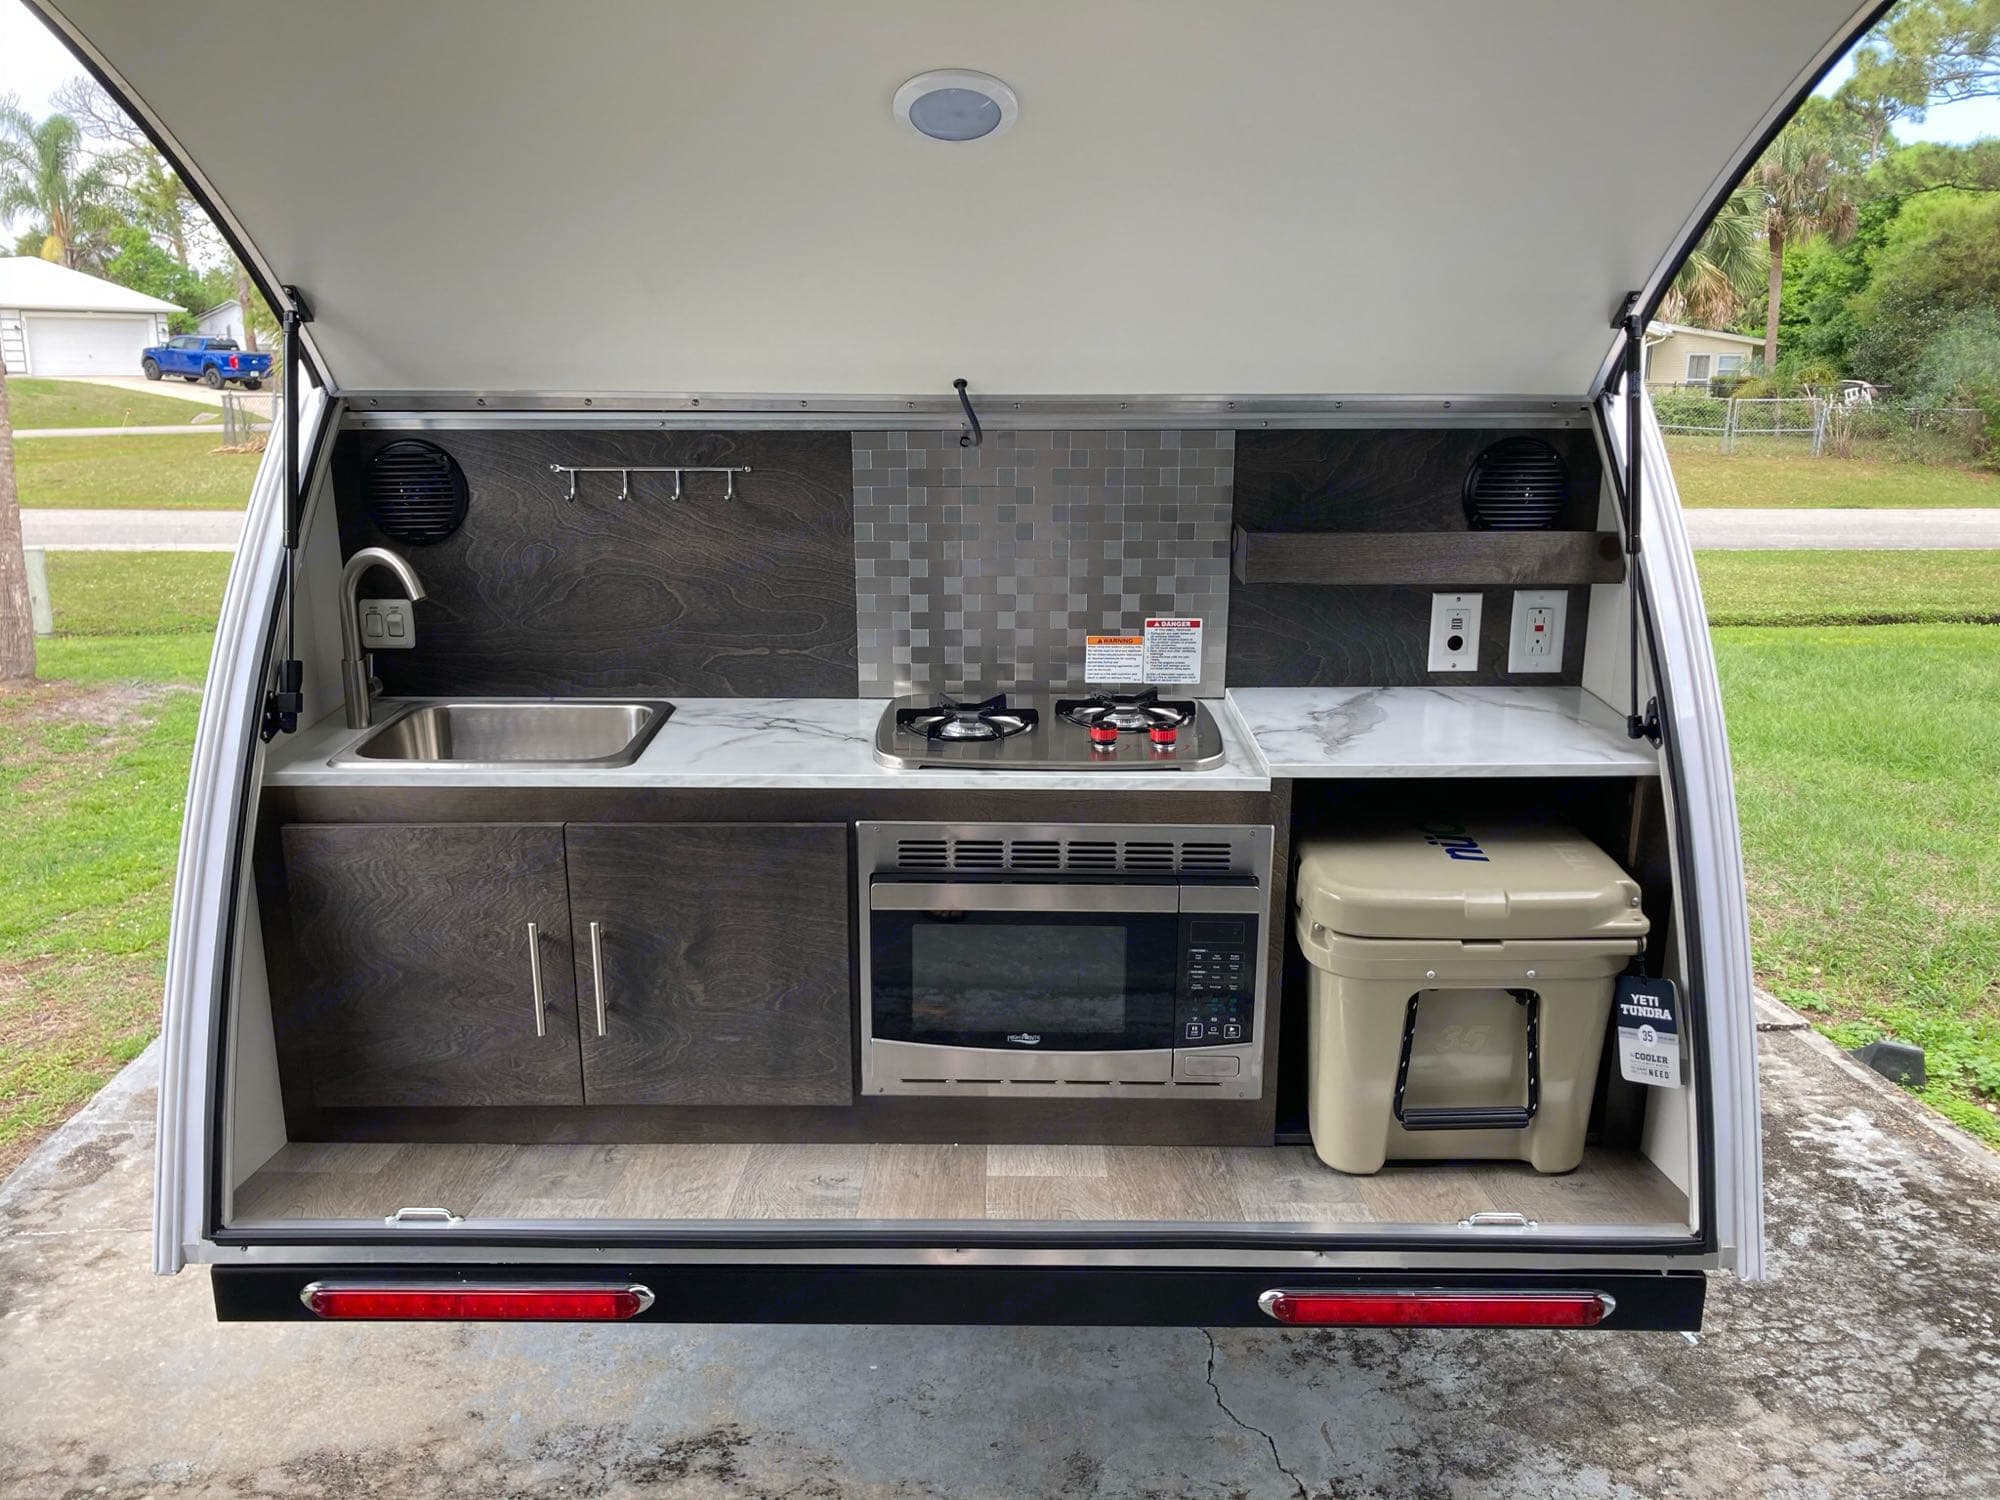 propane stove, microwave, yeti cooler. Other Other 2021